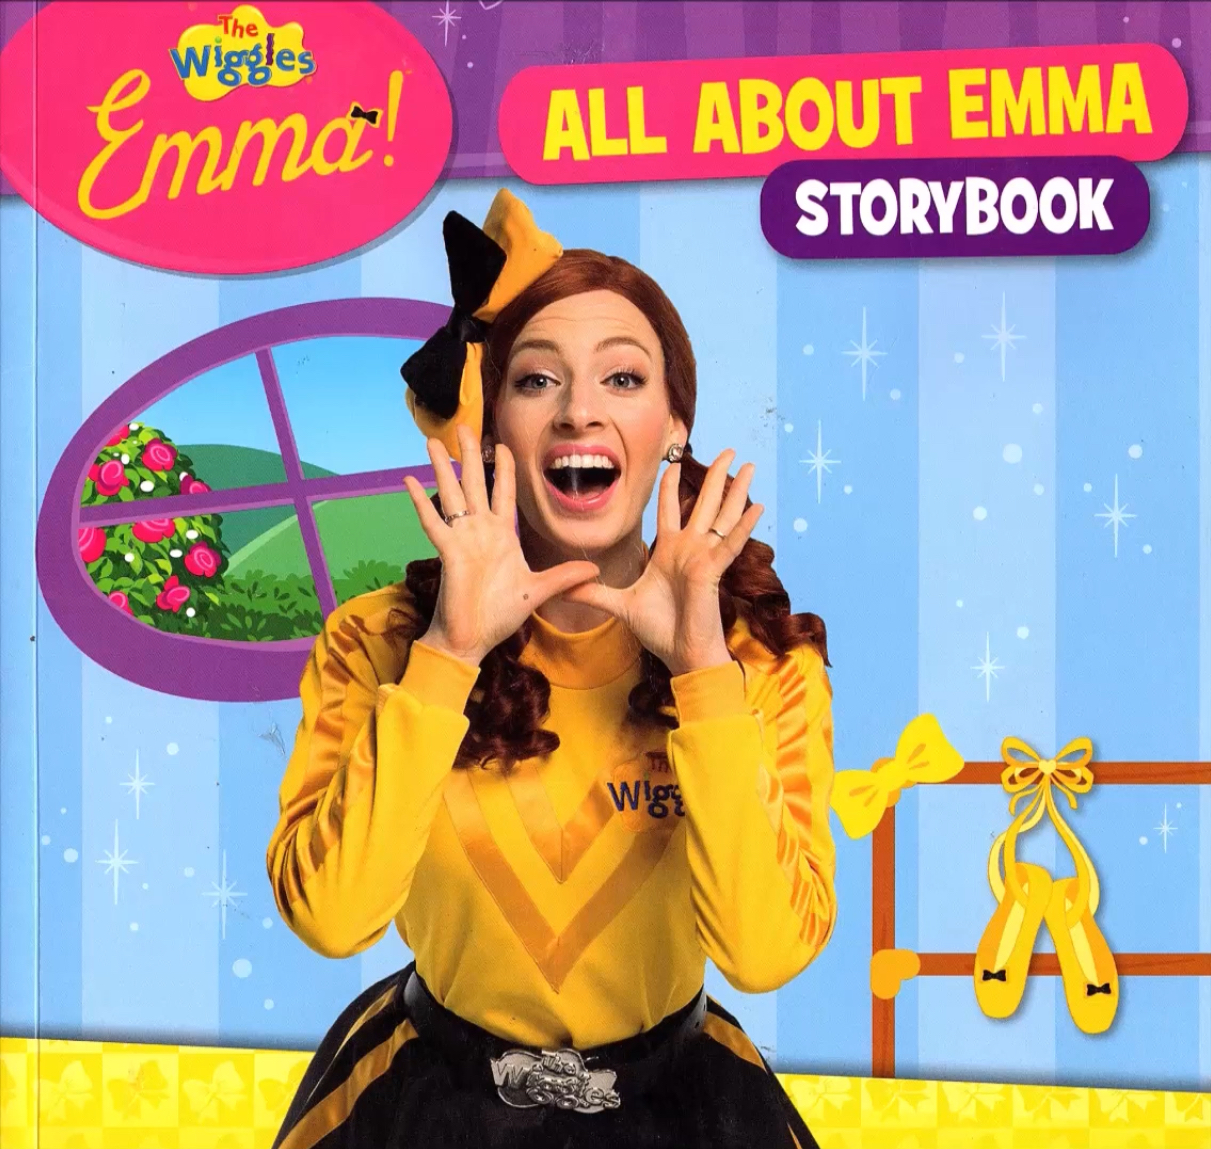 All About Emma Storybook